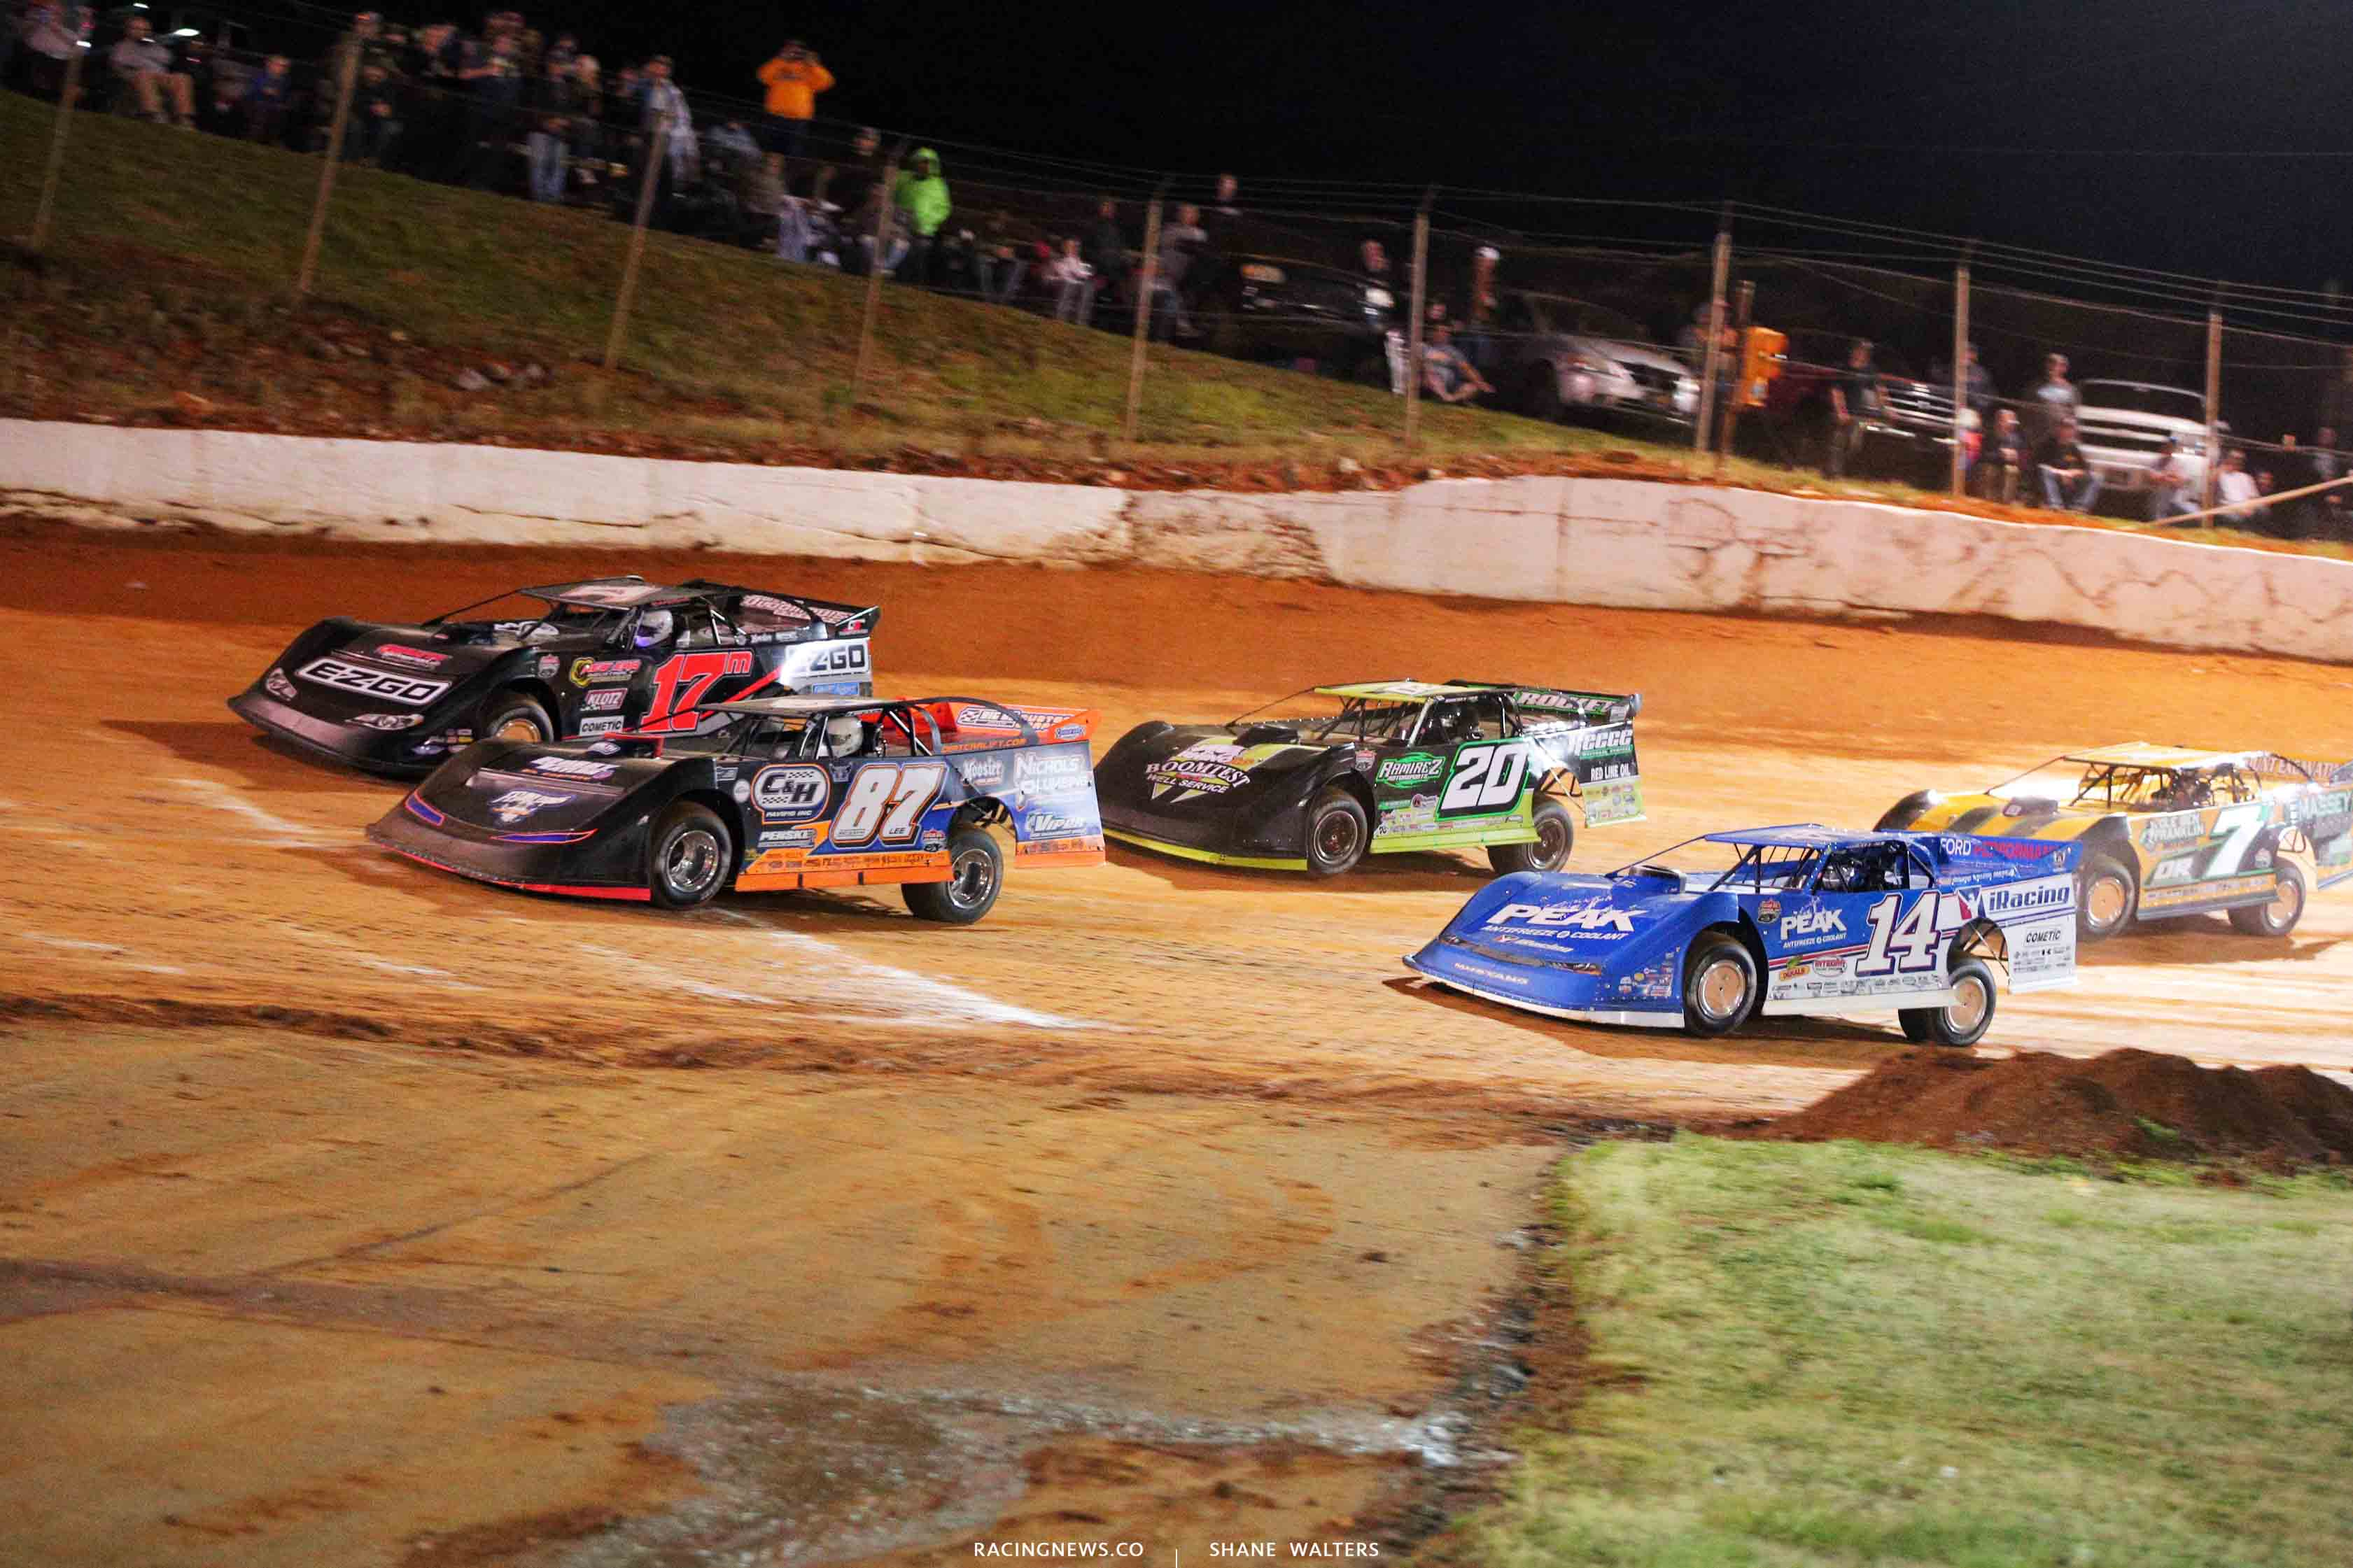 Ross Bailes, Dale McDowell, Jimmy Owens, Josh Richards and Donald McIntosh at 411 Motor Speedway 1426